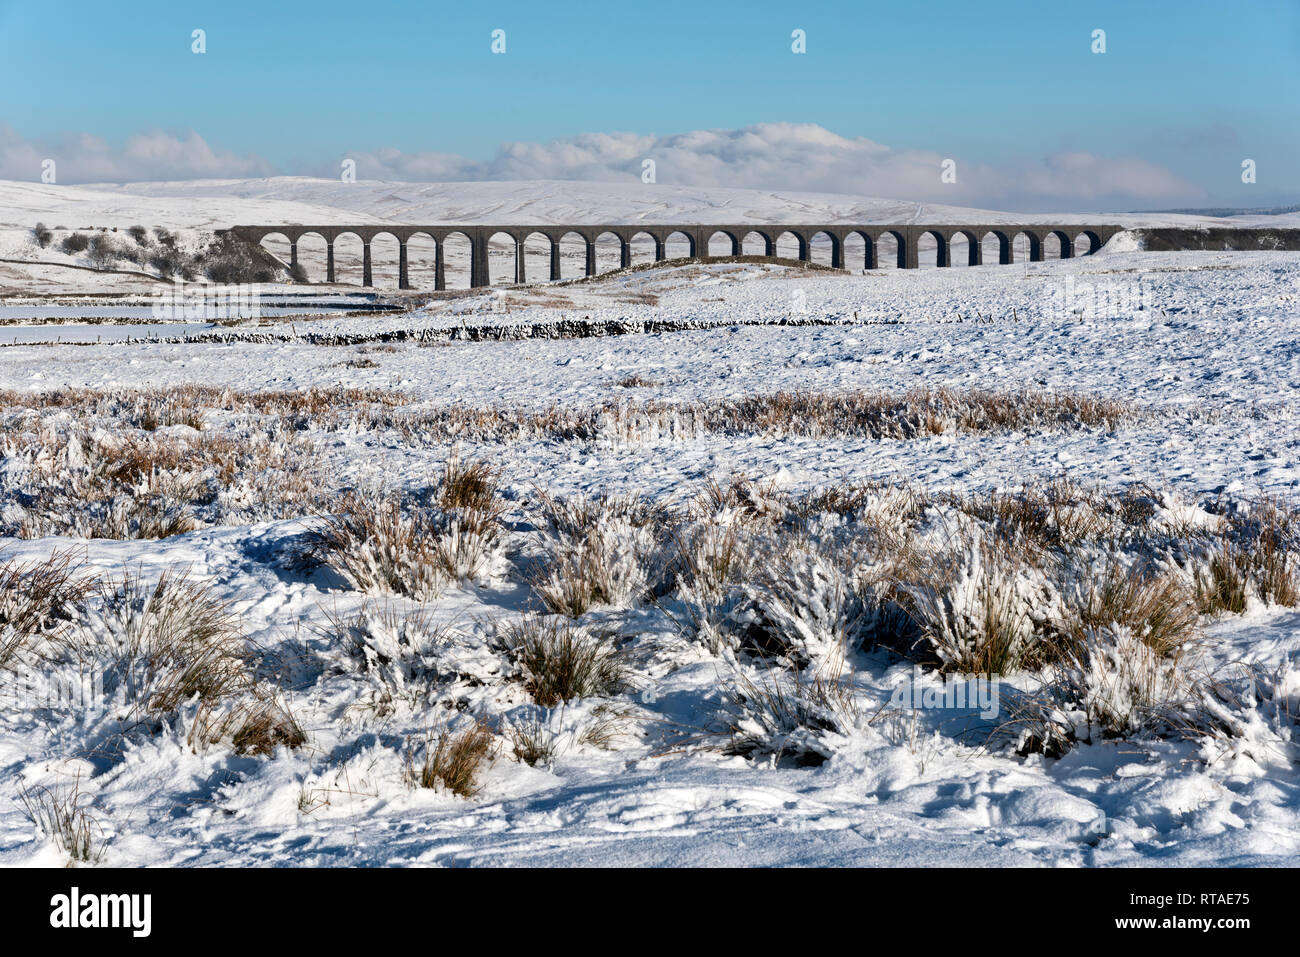 Ribblehead (Batty Moss) Viaduct in the snow, near Ingleton, Yorkshire Dales National Park, UK. Situated on the famous Settle-Carlisle railway line. - Stock Image